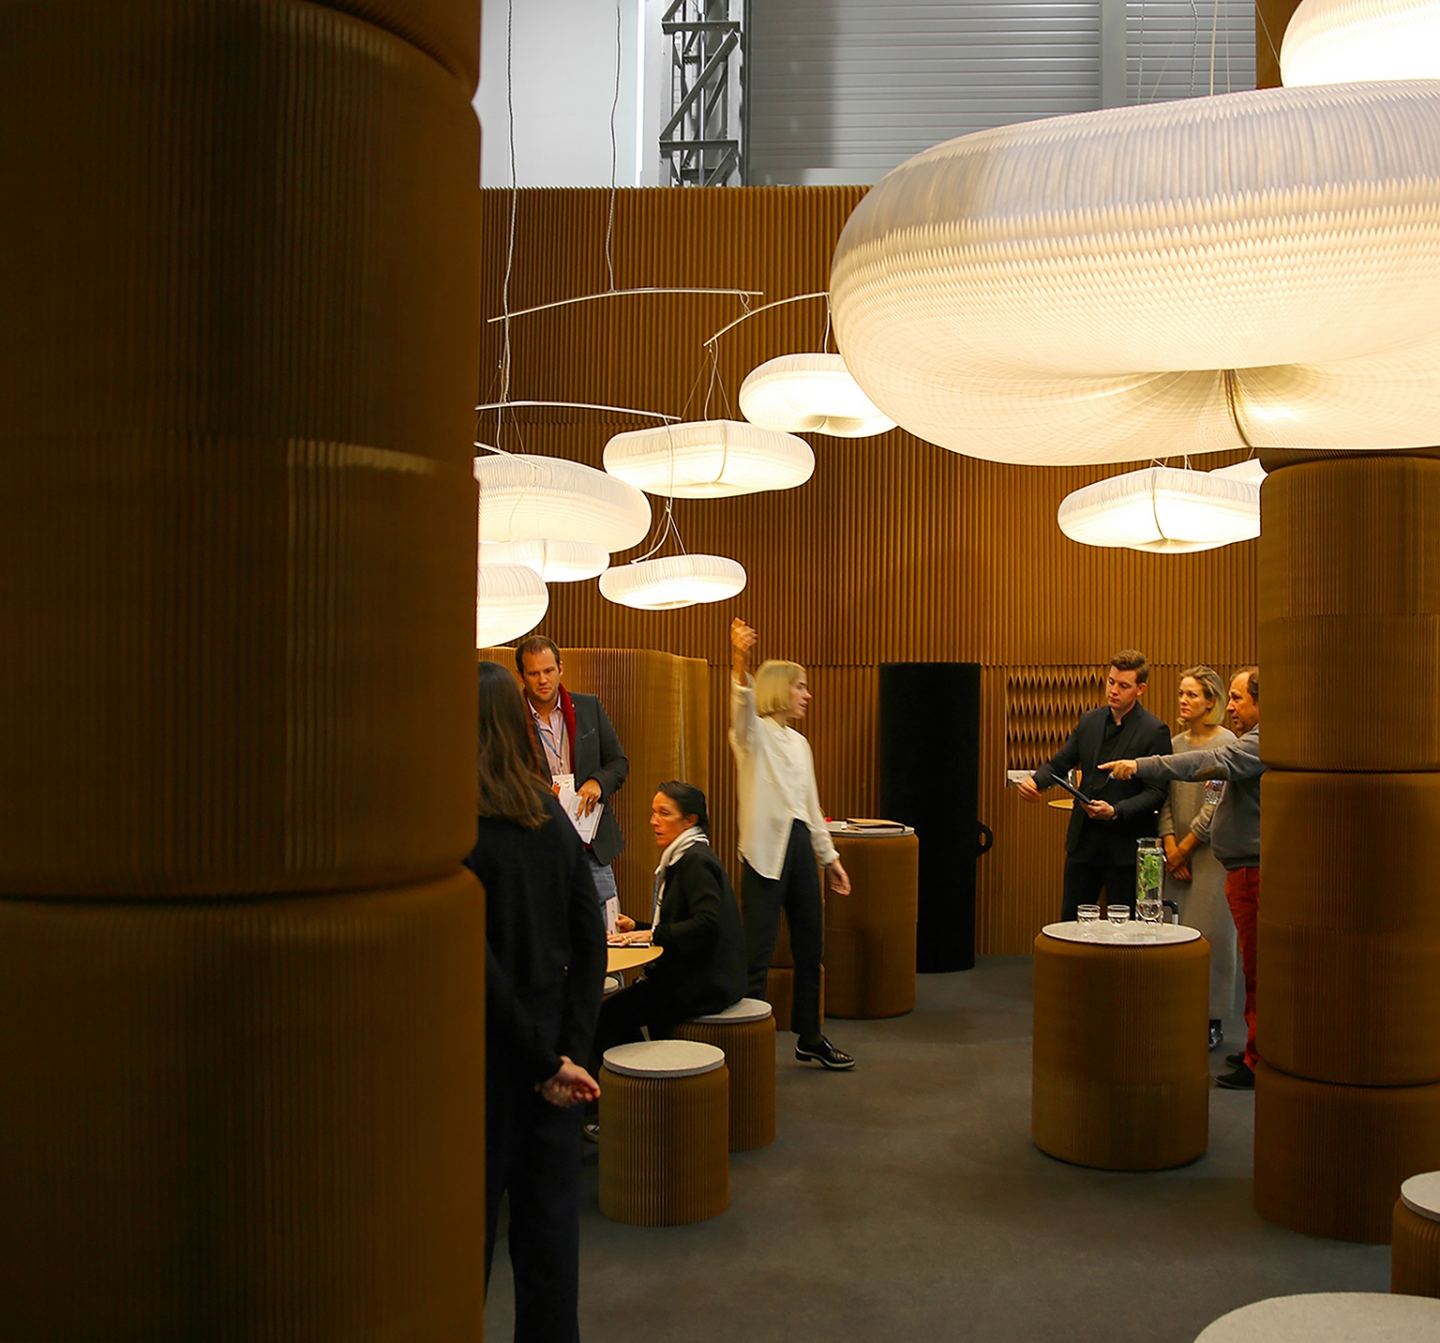 paper lighting and modular paper furniture by molo - molo's installation at Maison & Objet, 2016